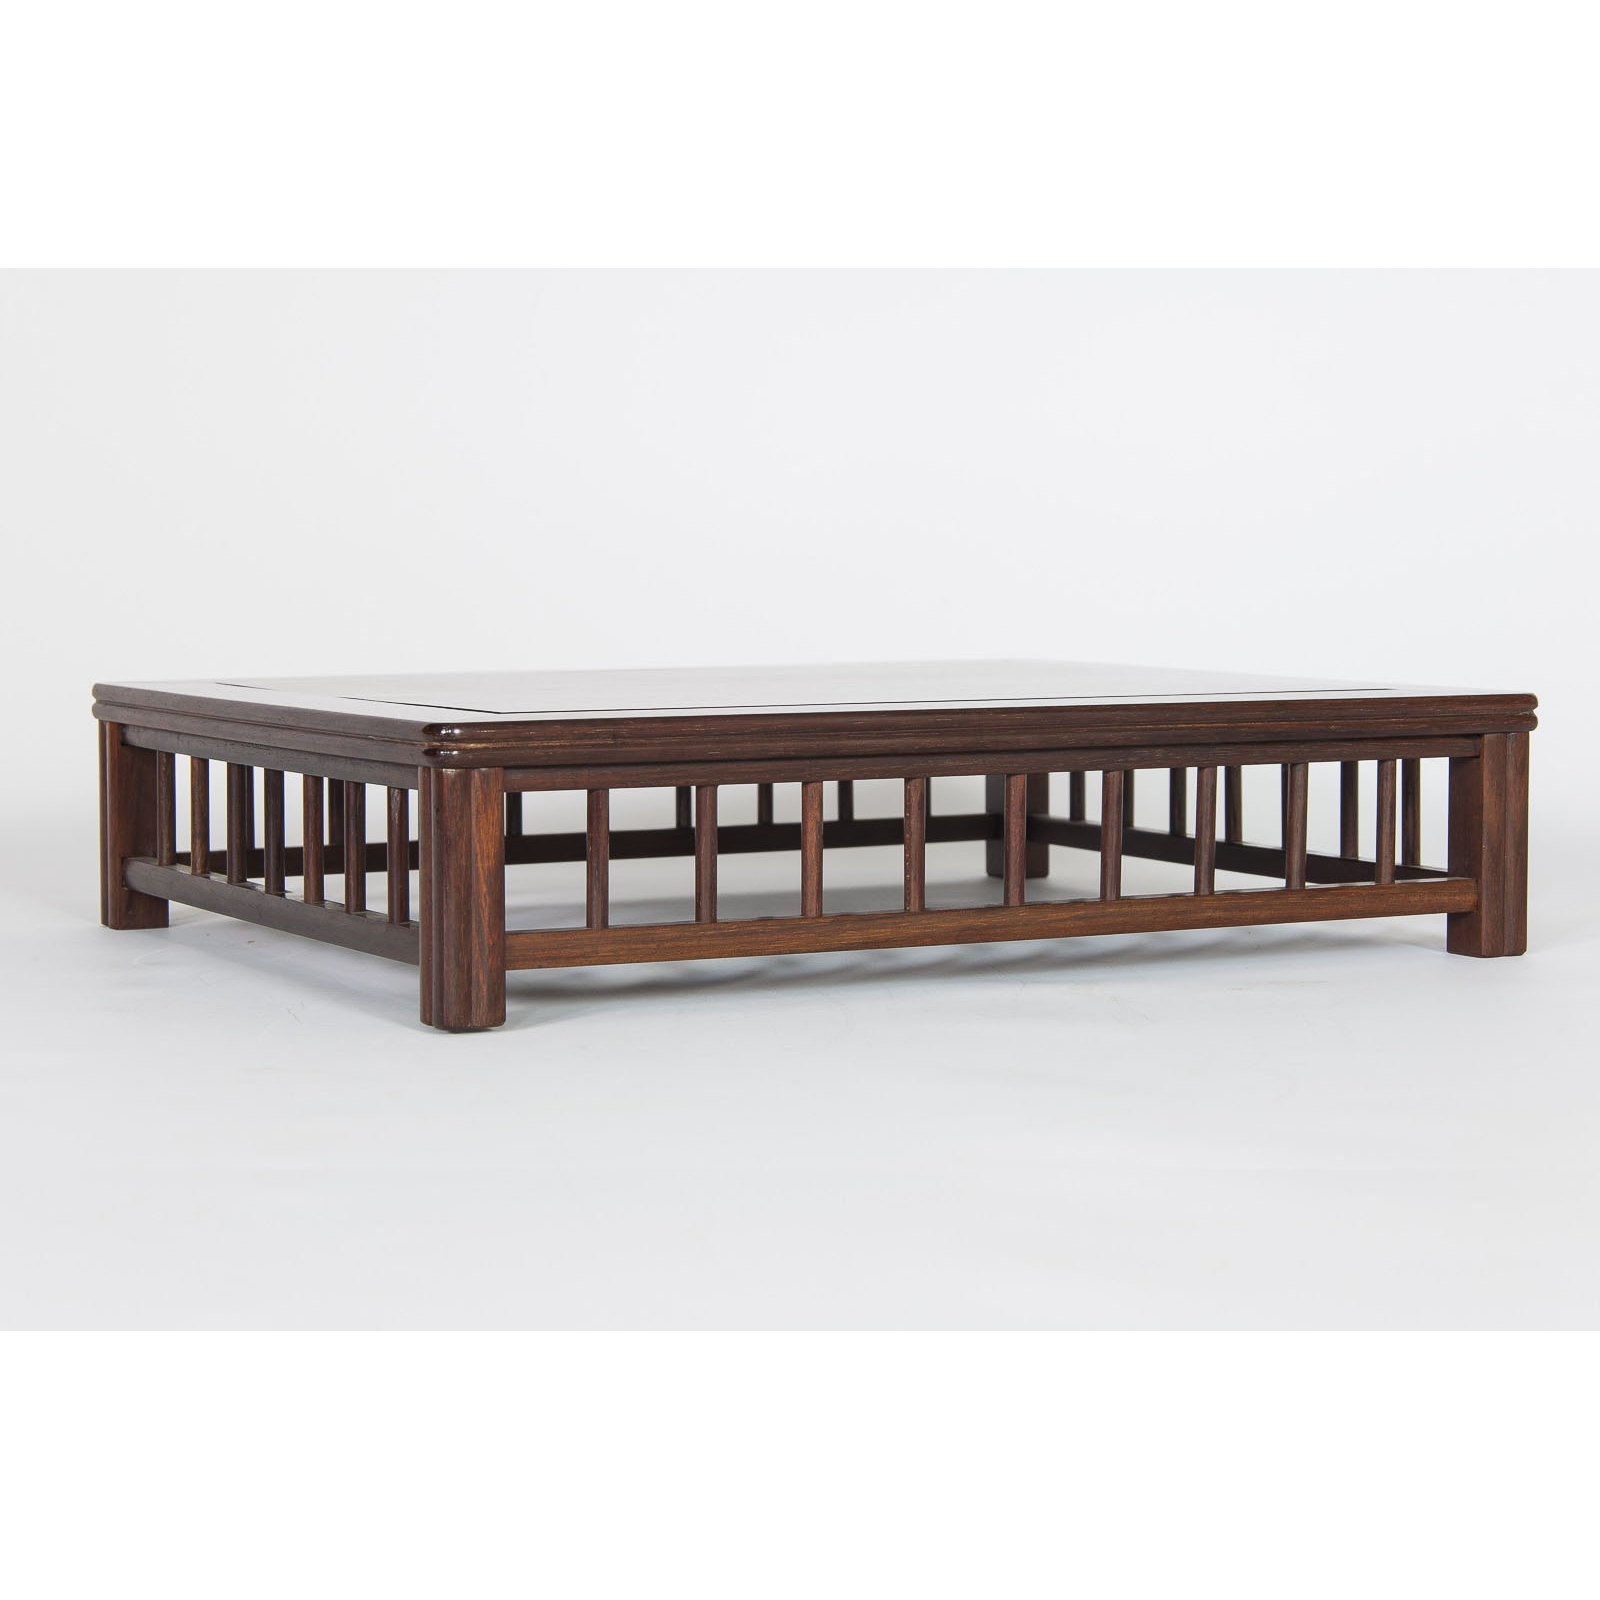 Table MN-007